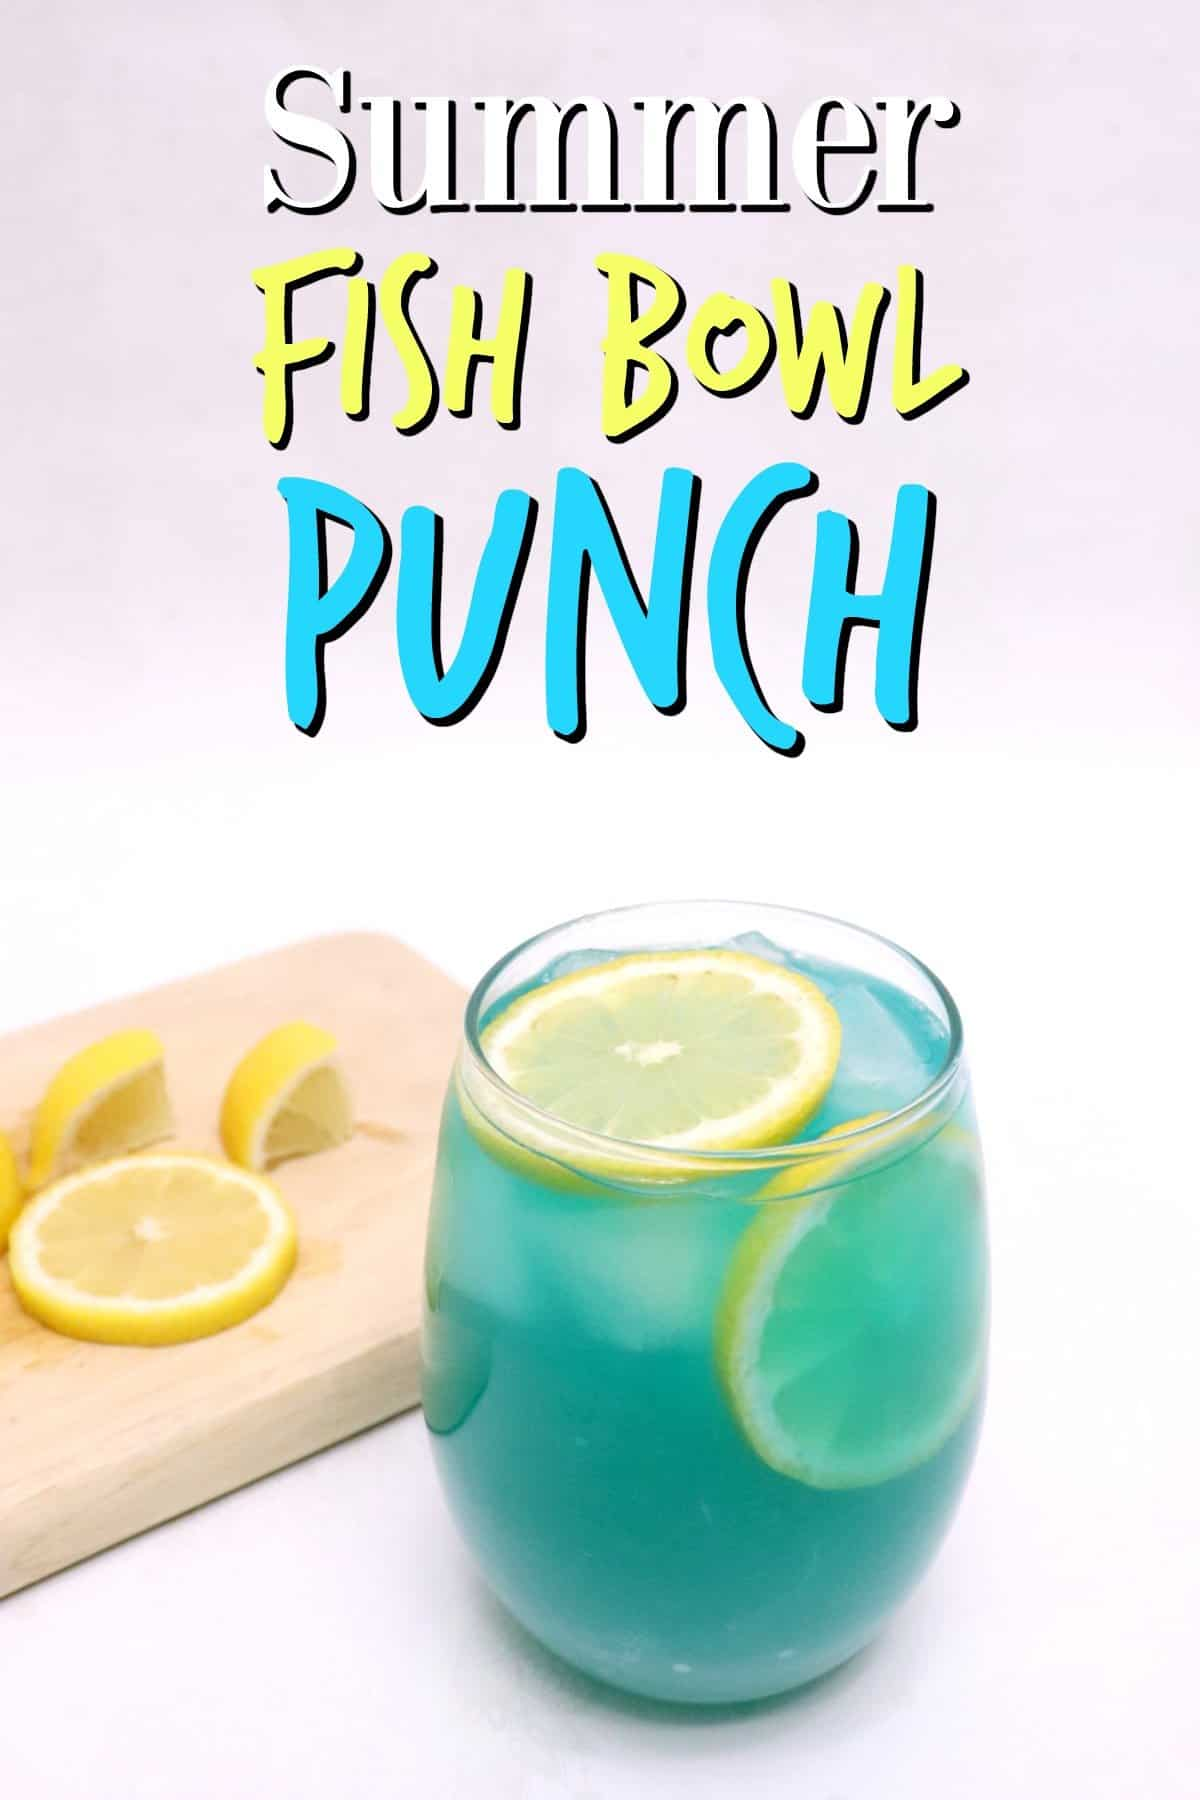 Summer fish bowl punch